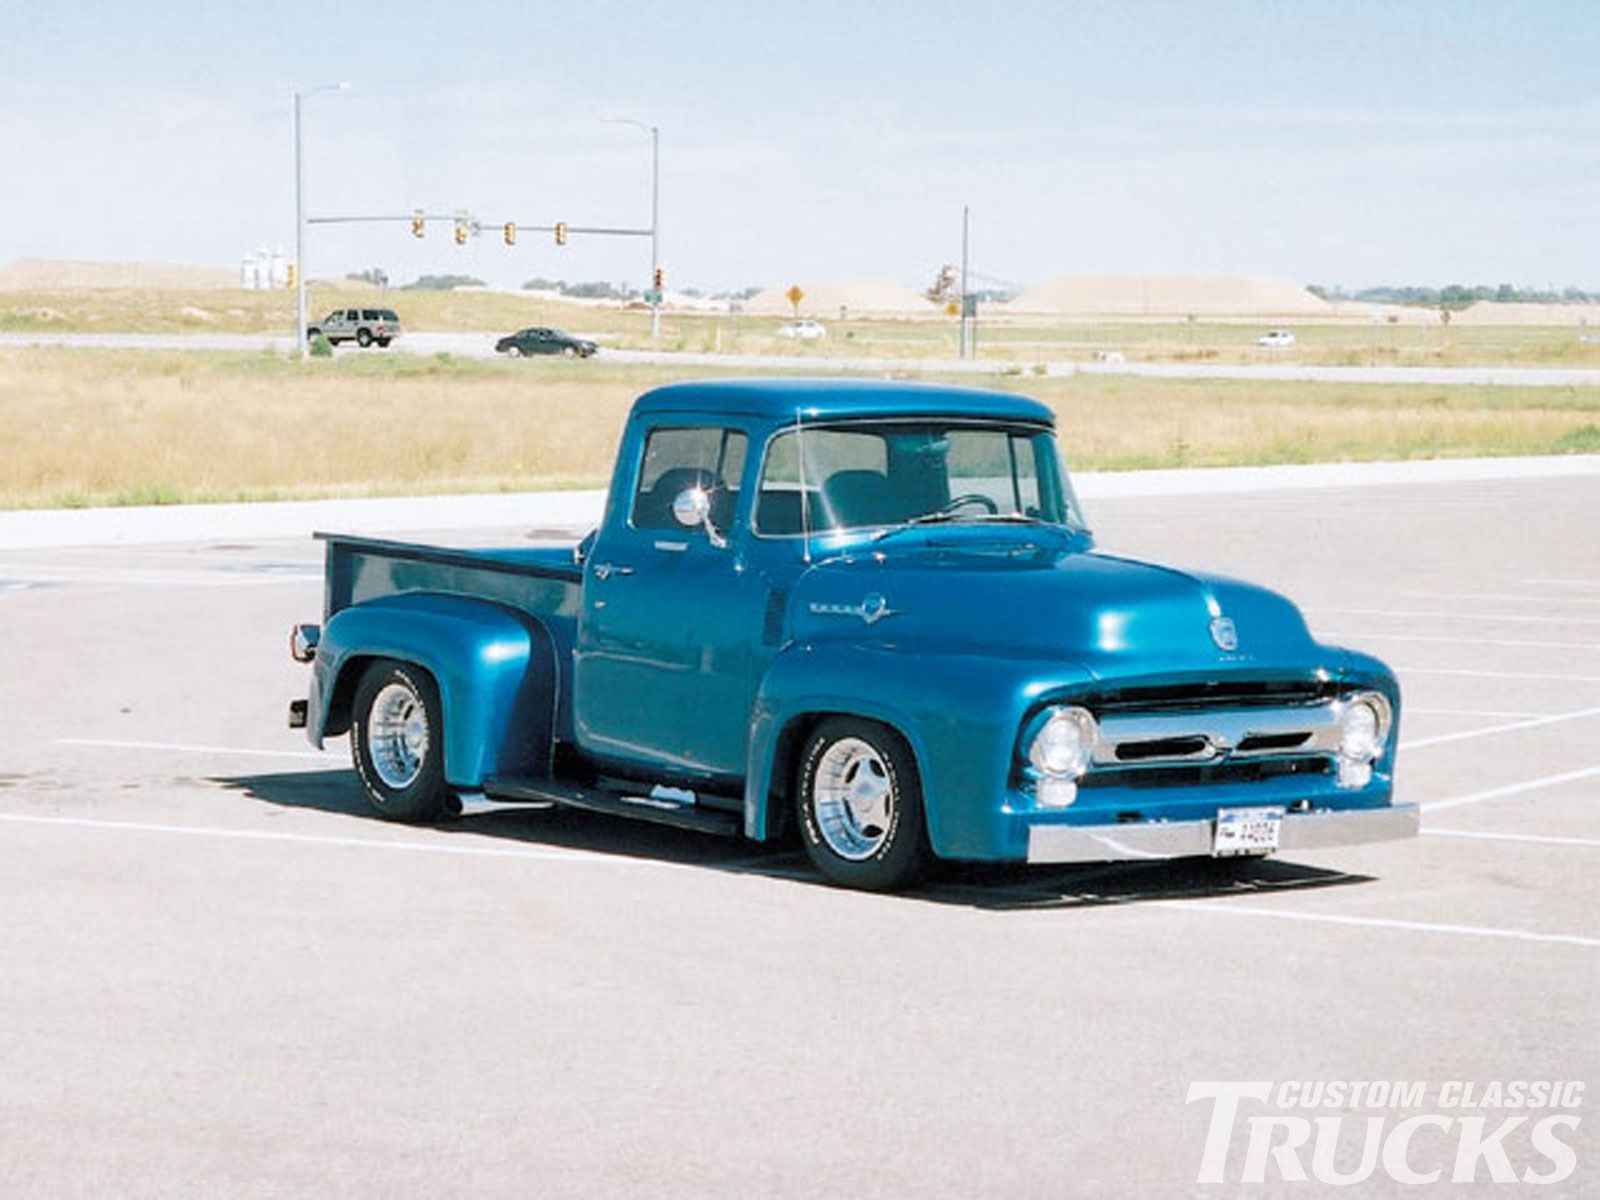 Classic trucks custom classic trucks readers rides 1956 ford f100 photo 1